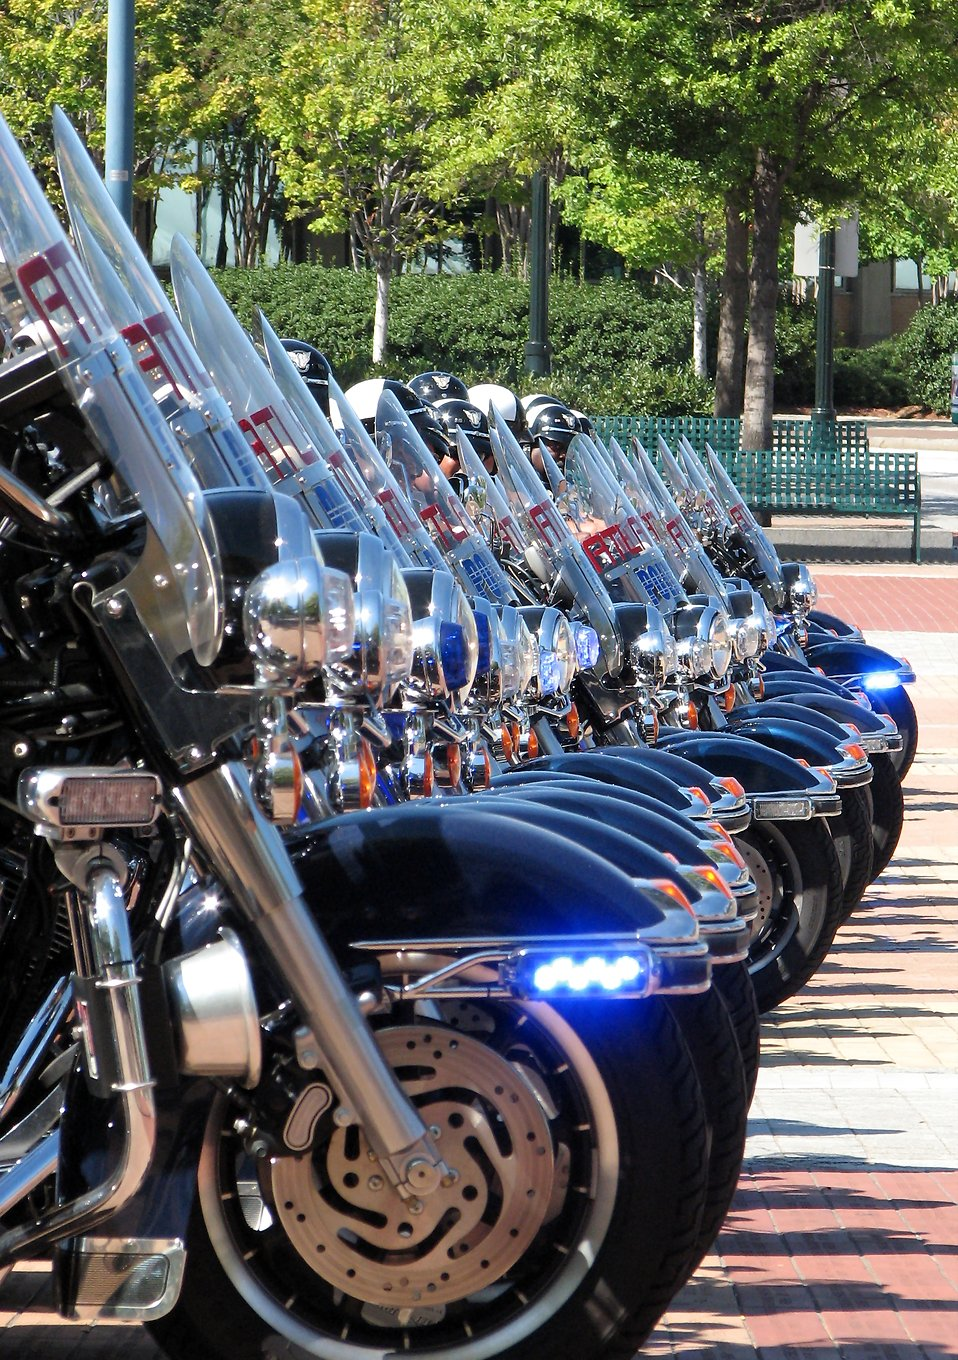 Police motorcycles lined up.